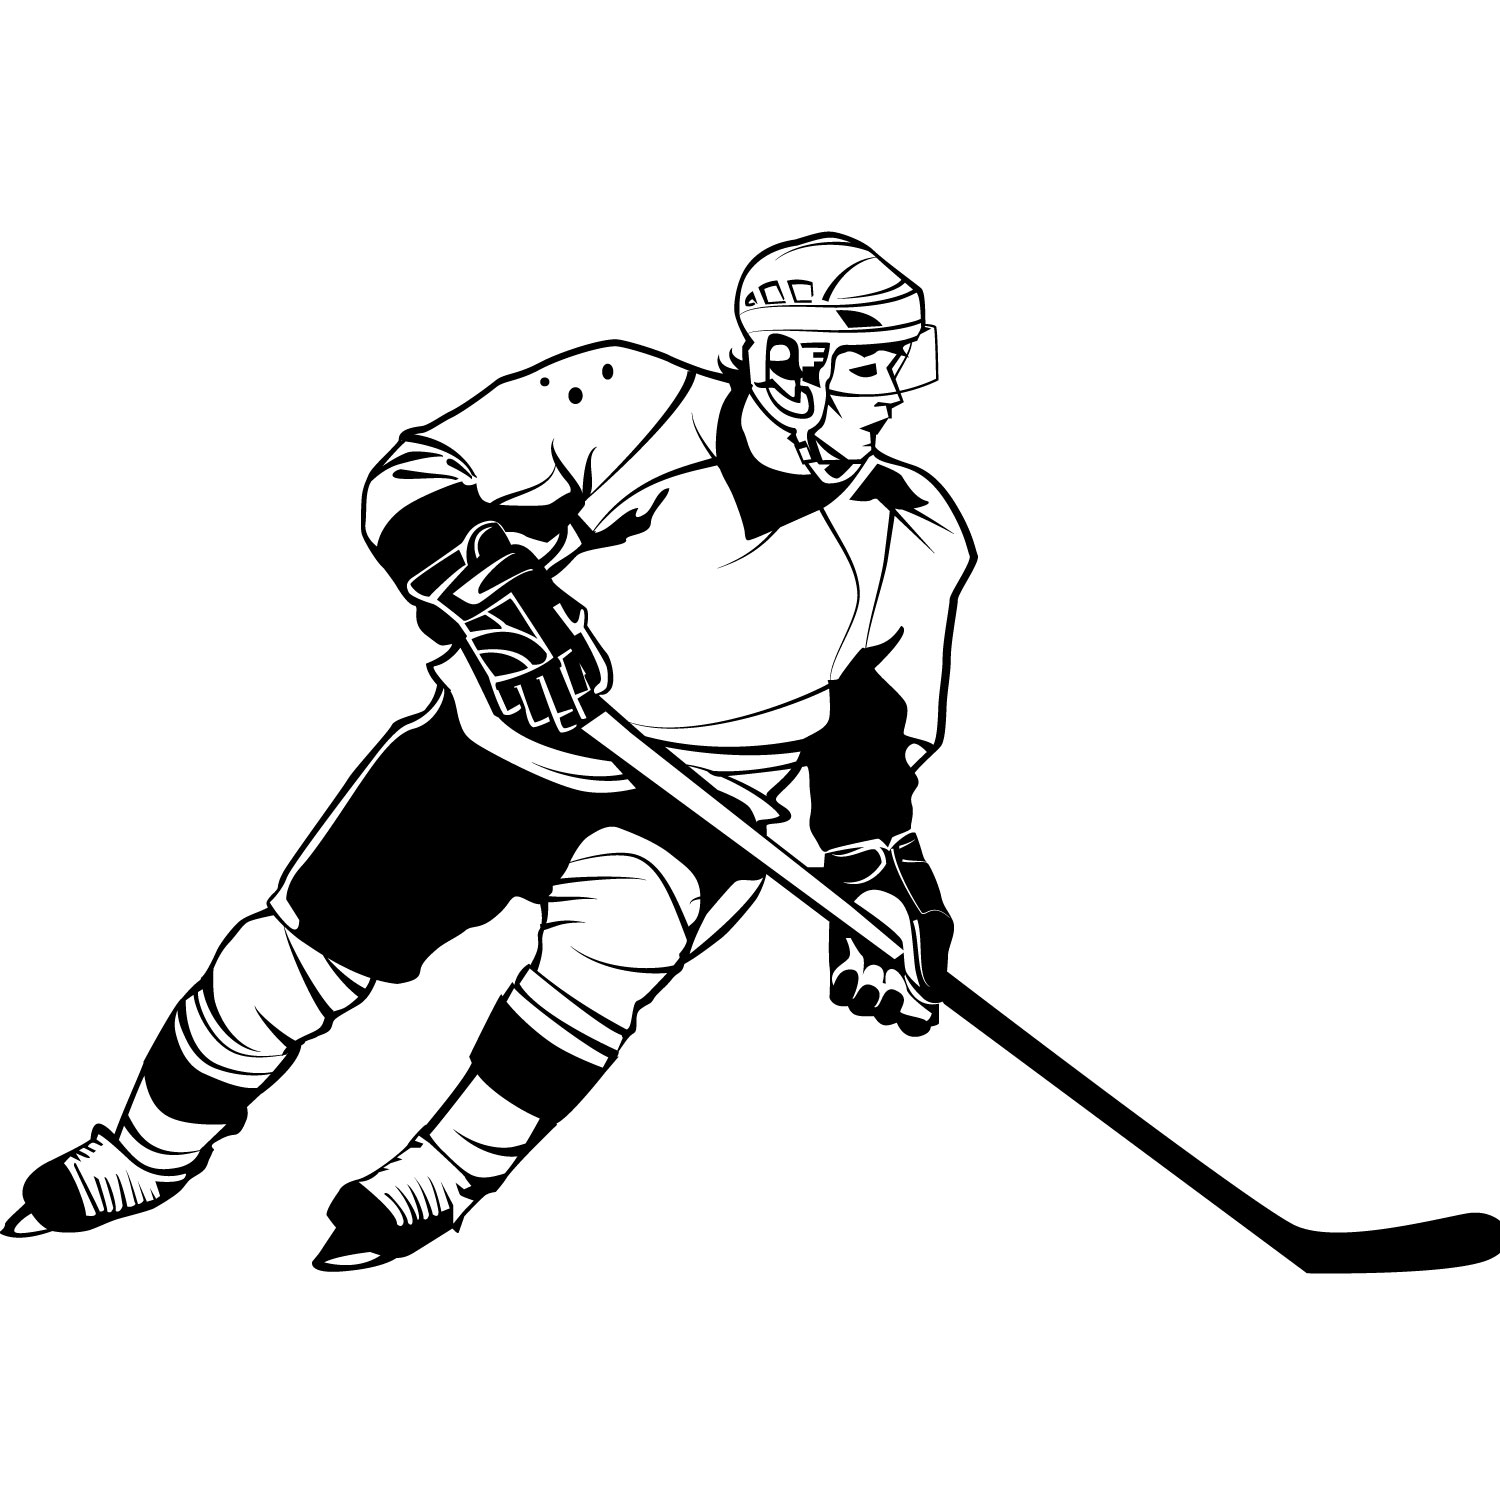 Hockey Clip Art Images Free Clipart Panda Free Clipart Images